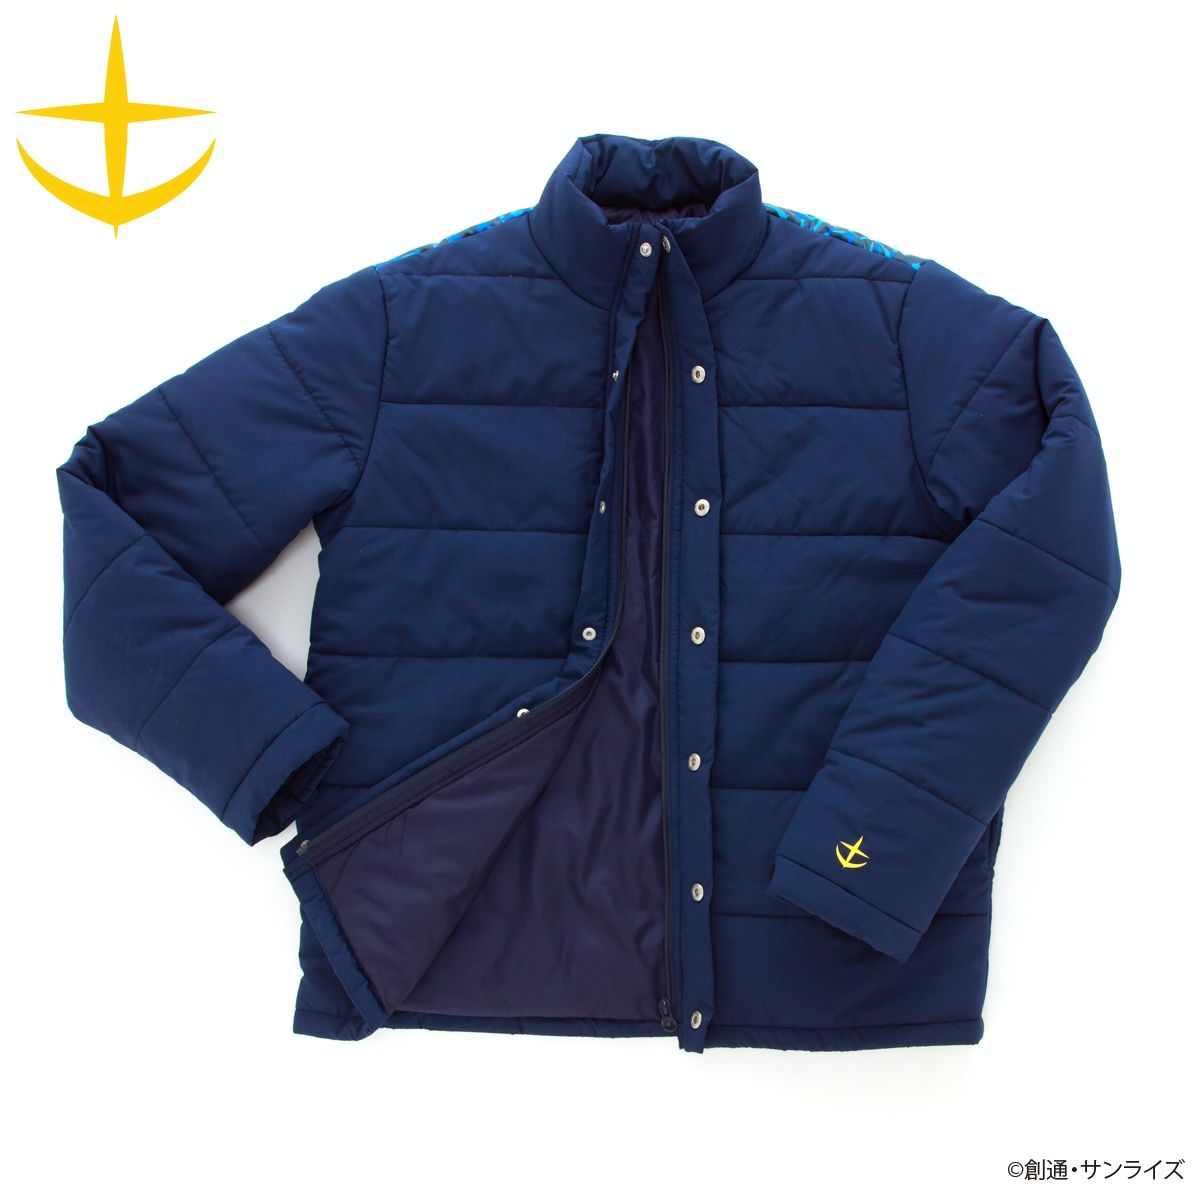 Mobile Suit Gundam Earth Federation Space Force Jacket